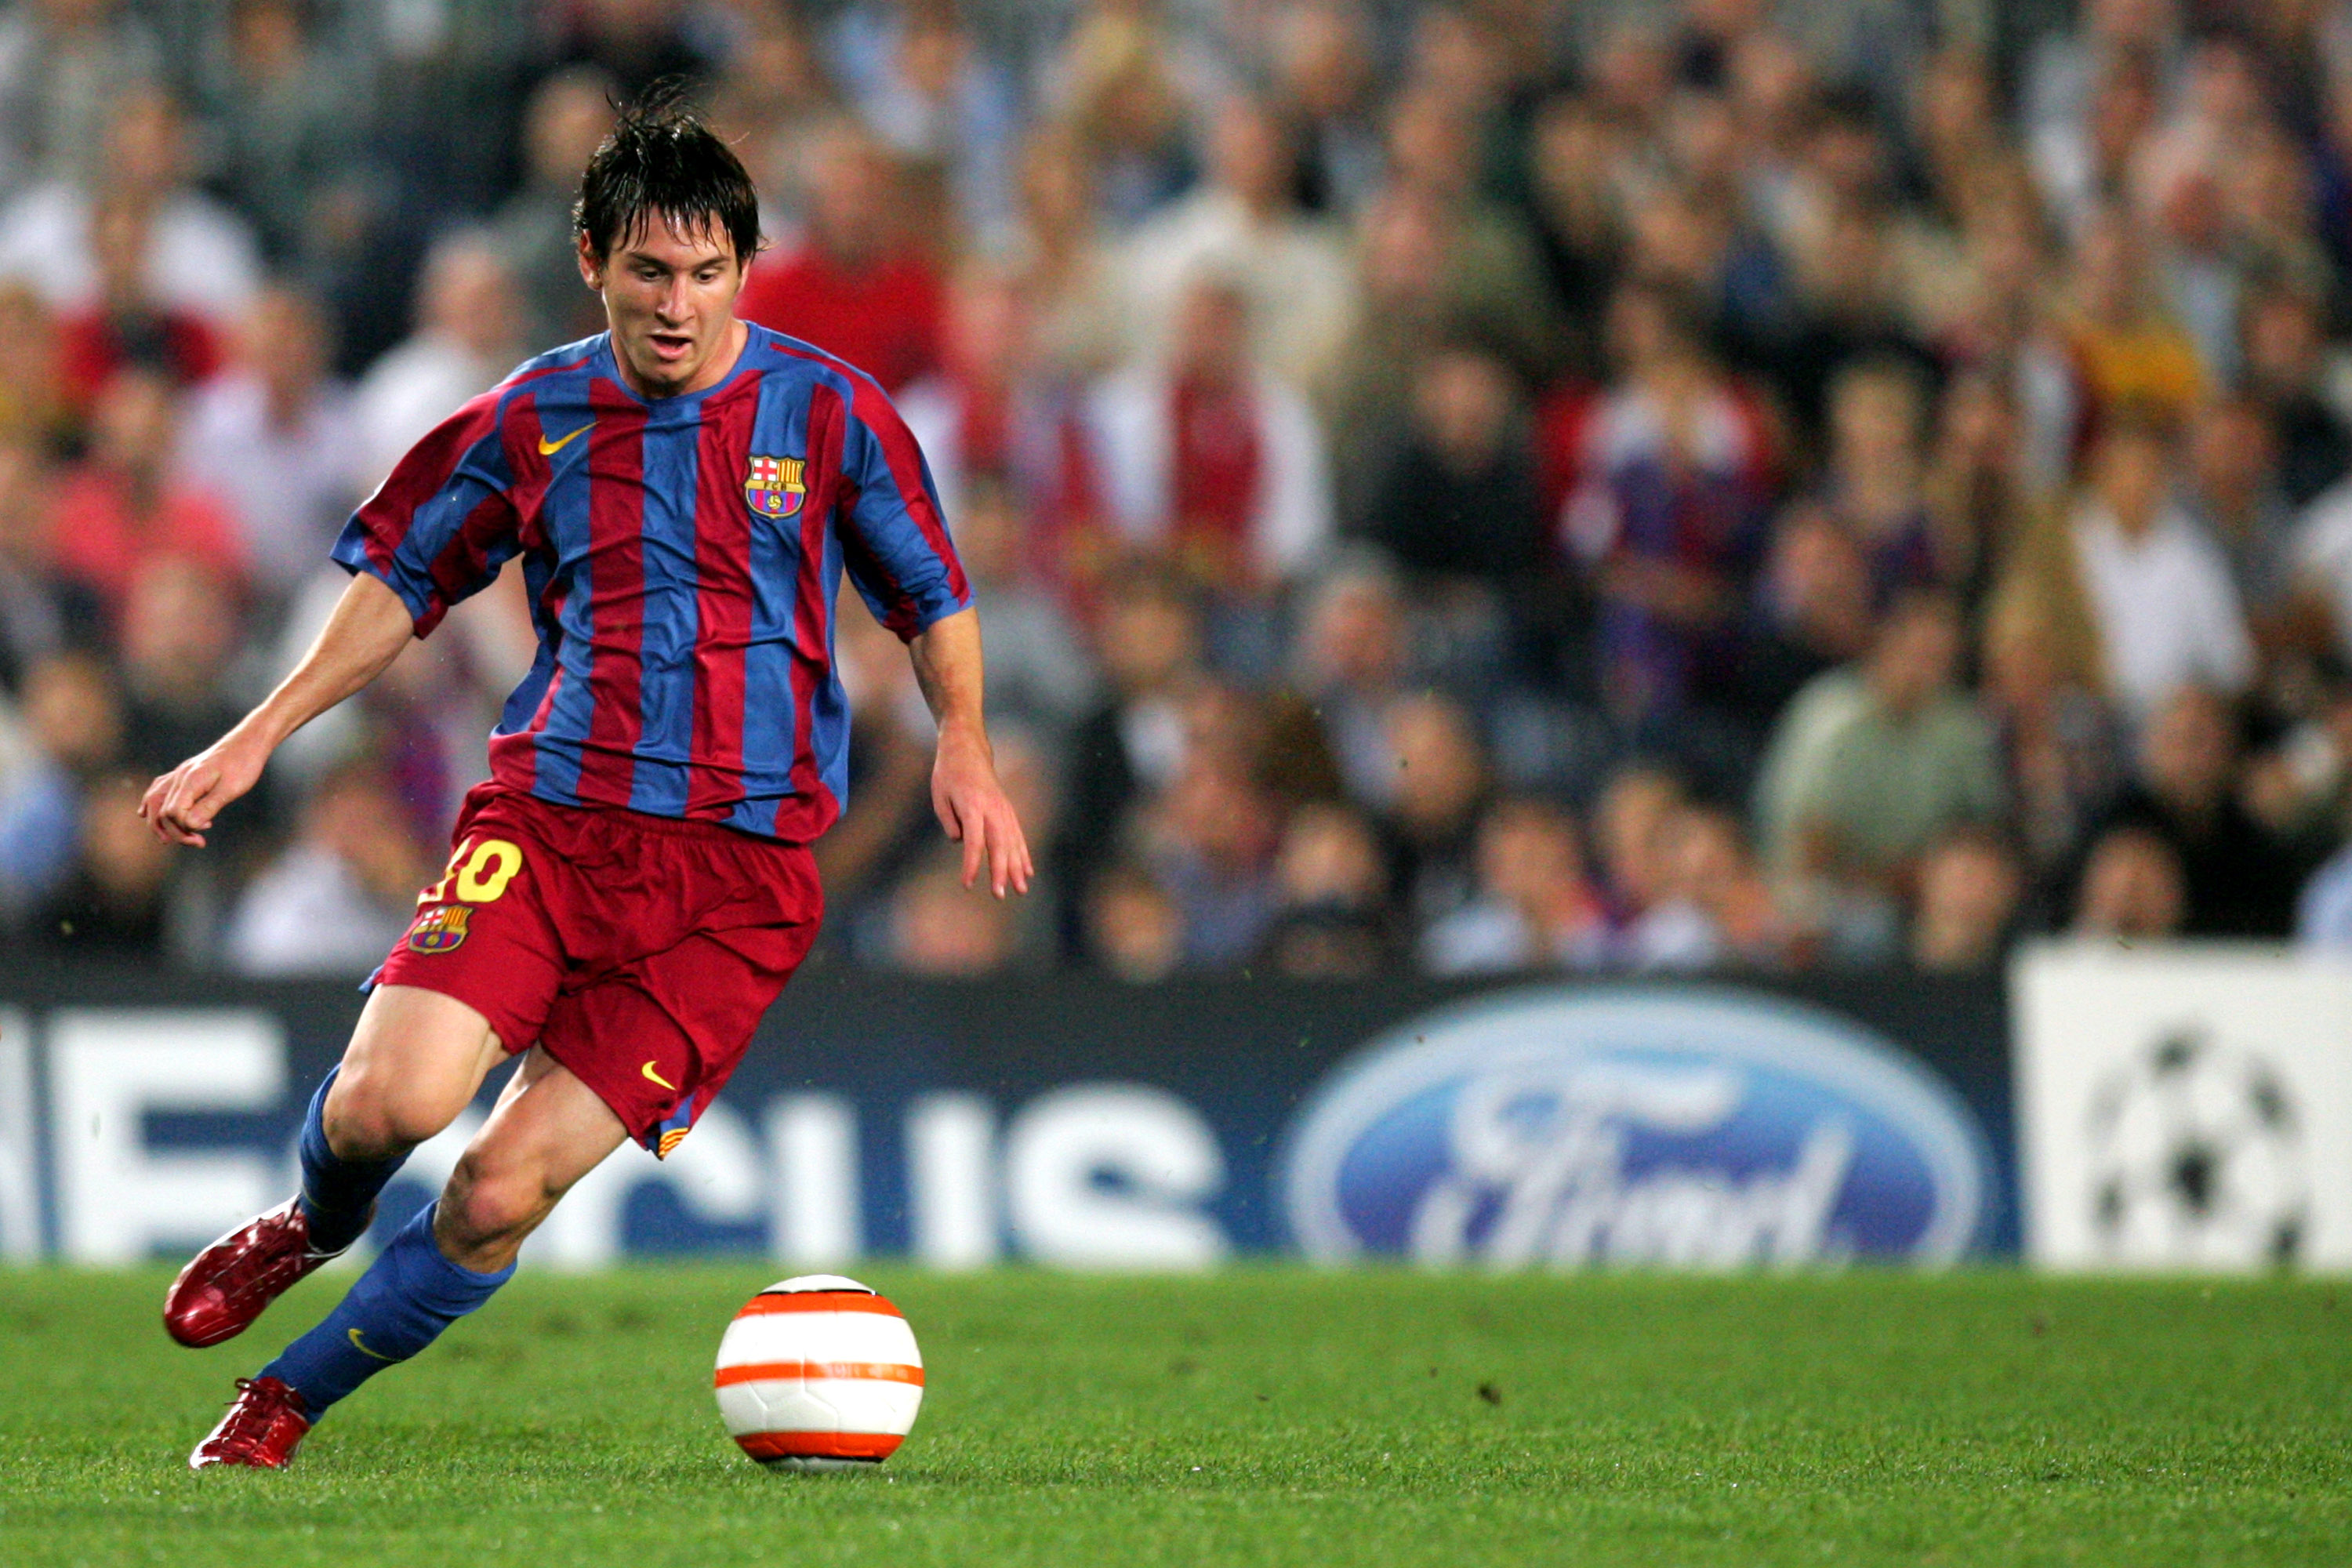 Lionel Messi, Barcelona  (Photo by Michael Regan - PA Images via Getty Images)